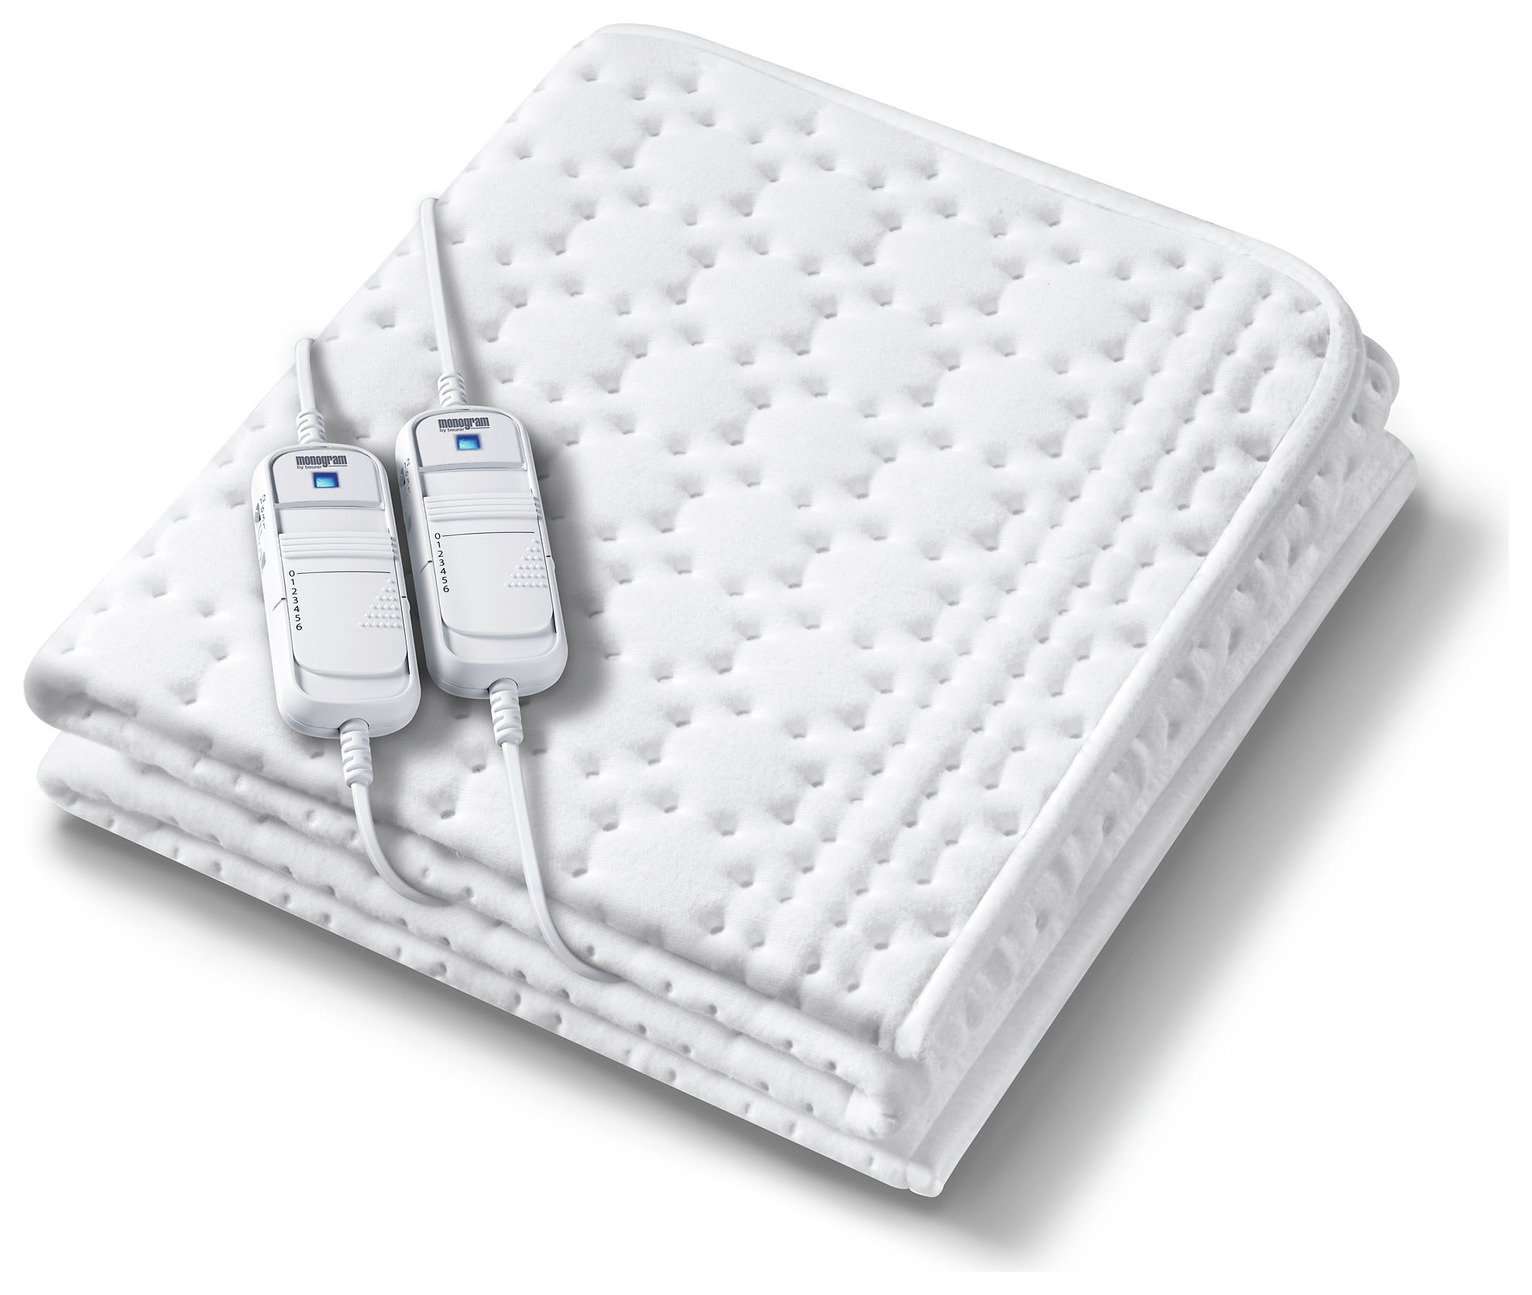 Image of Beurer Allergyfree Dual Control Heated Blanket - Superking